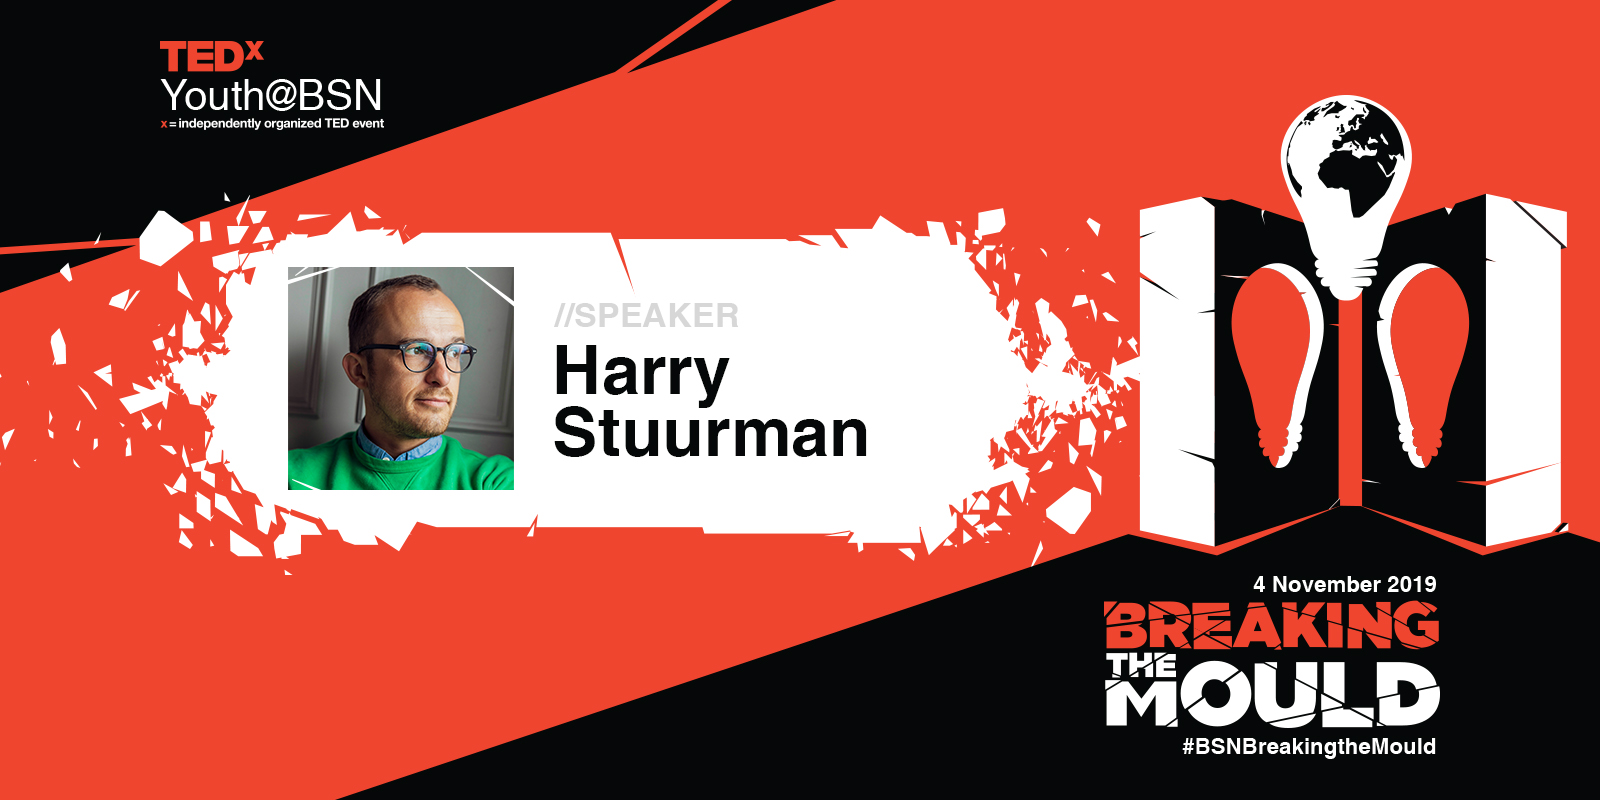 Accept yourself, break the mould and embrace your true, creative self | Harry Stuurman | TEDxYouthBSN Speaker